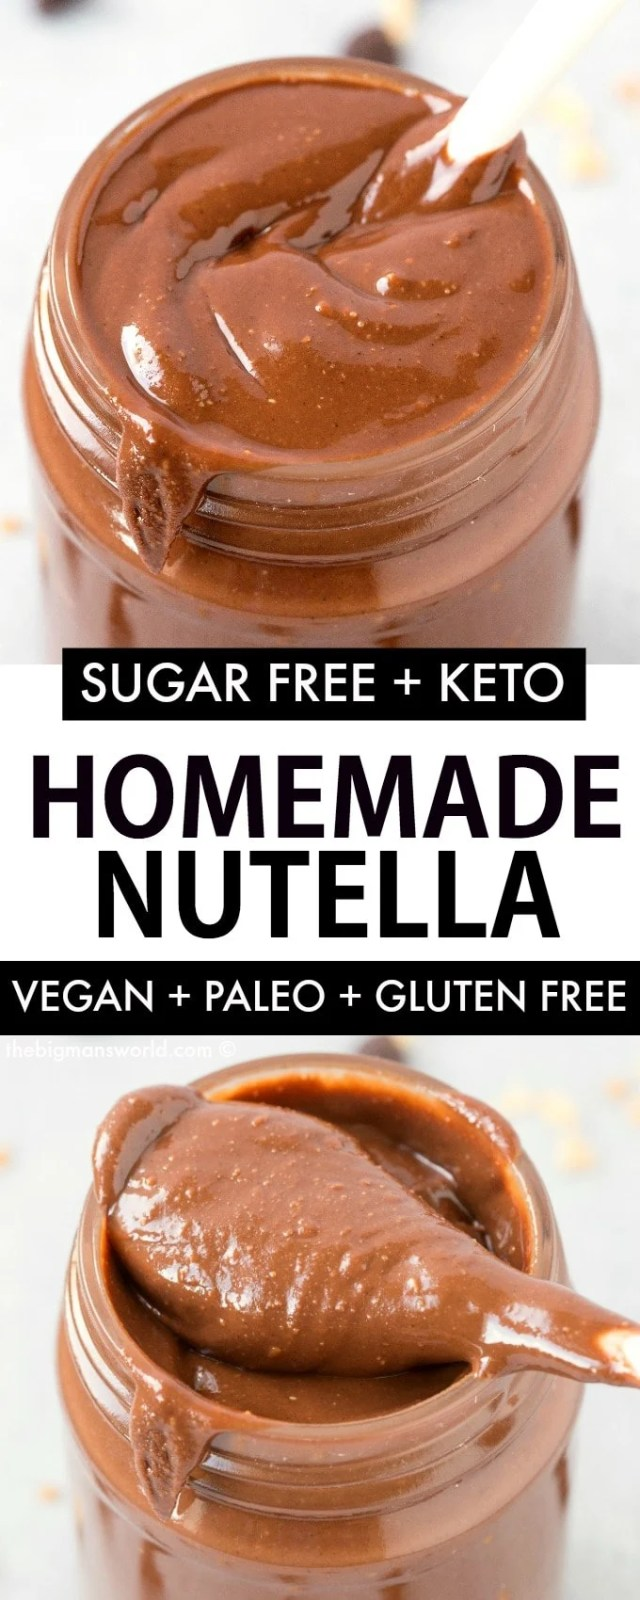 Easy homemade healthy nutella recipe, made with cocoa powder and hazelnuts!